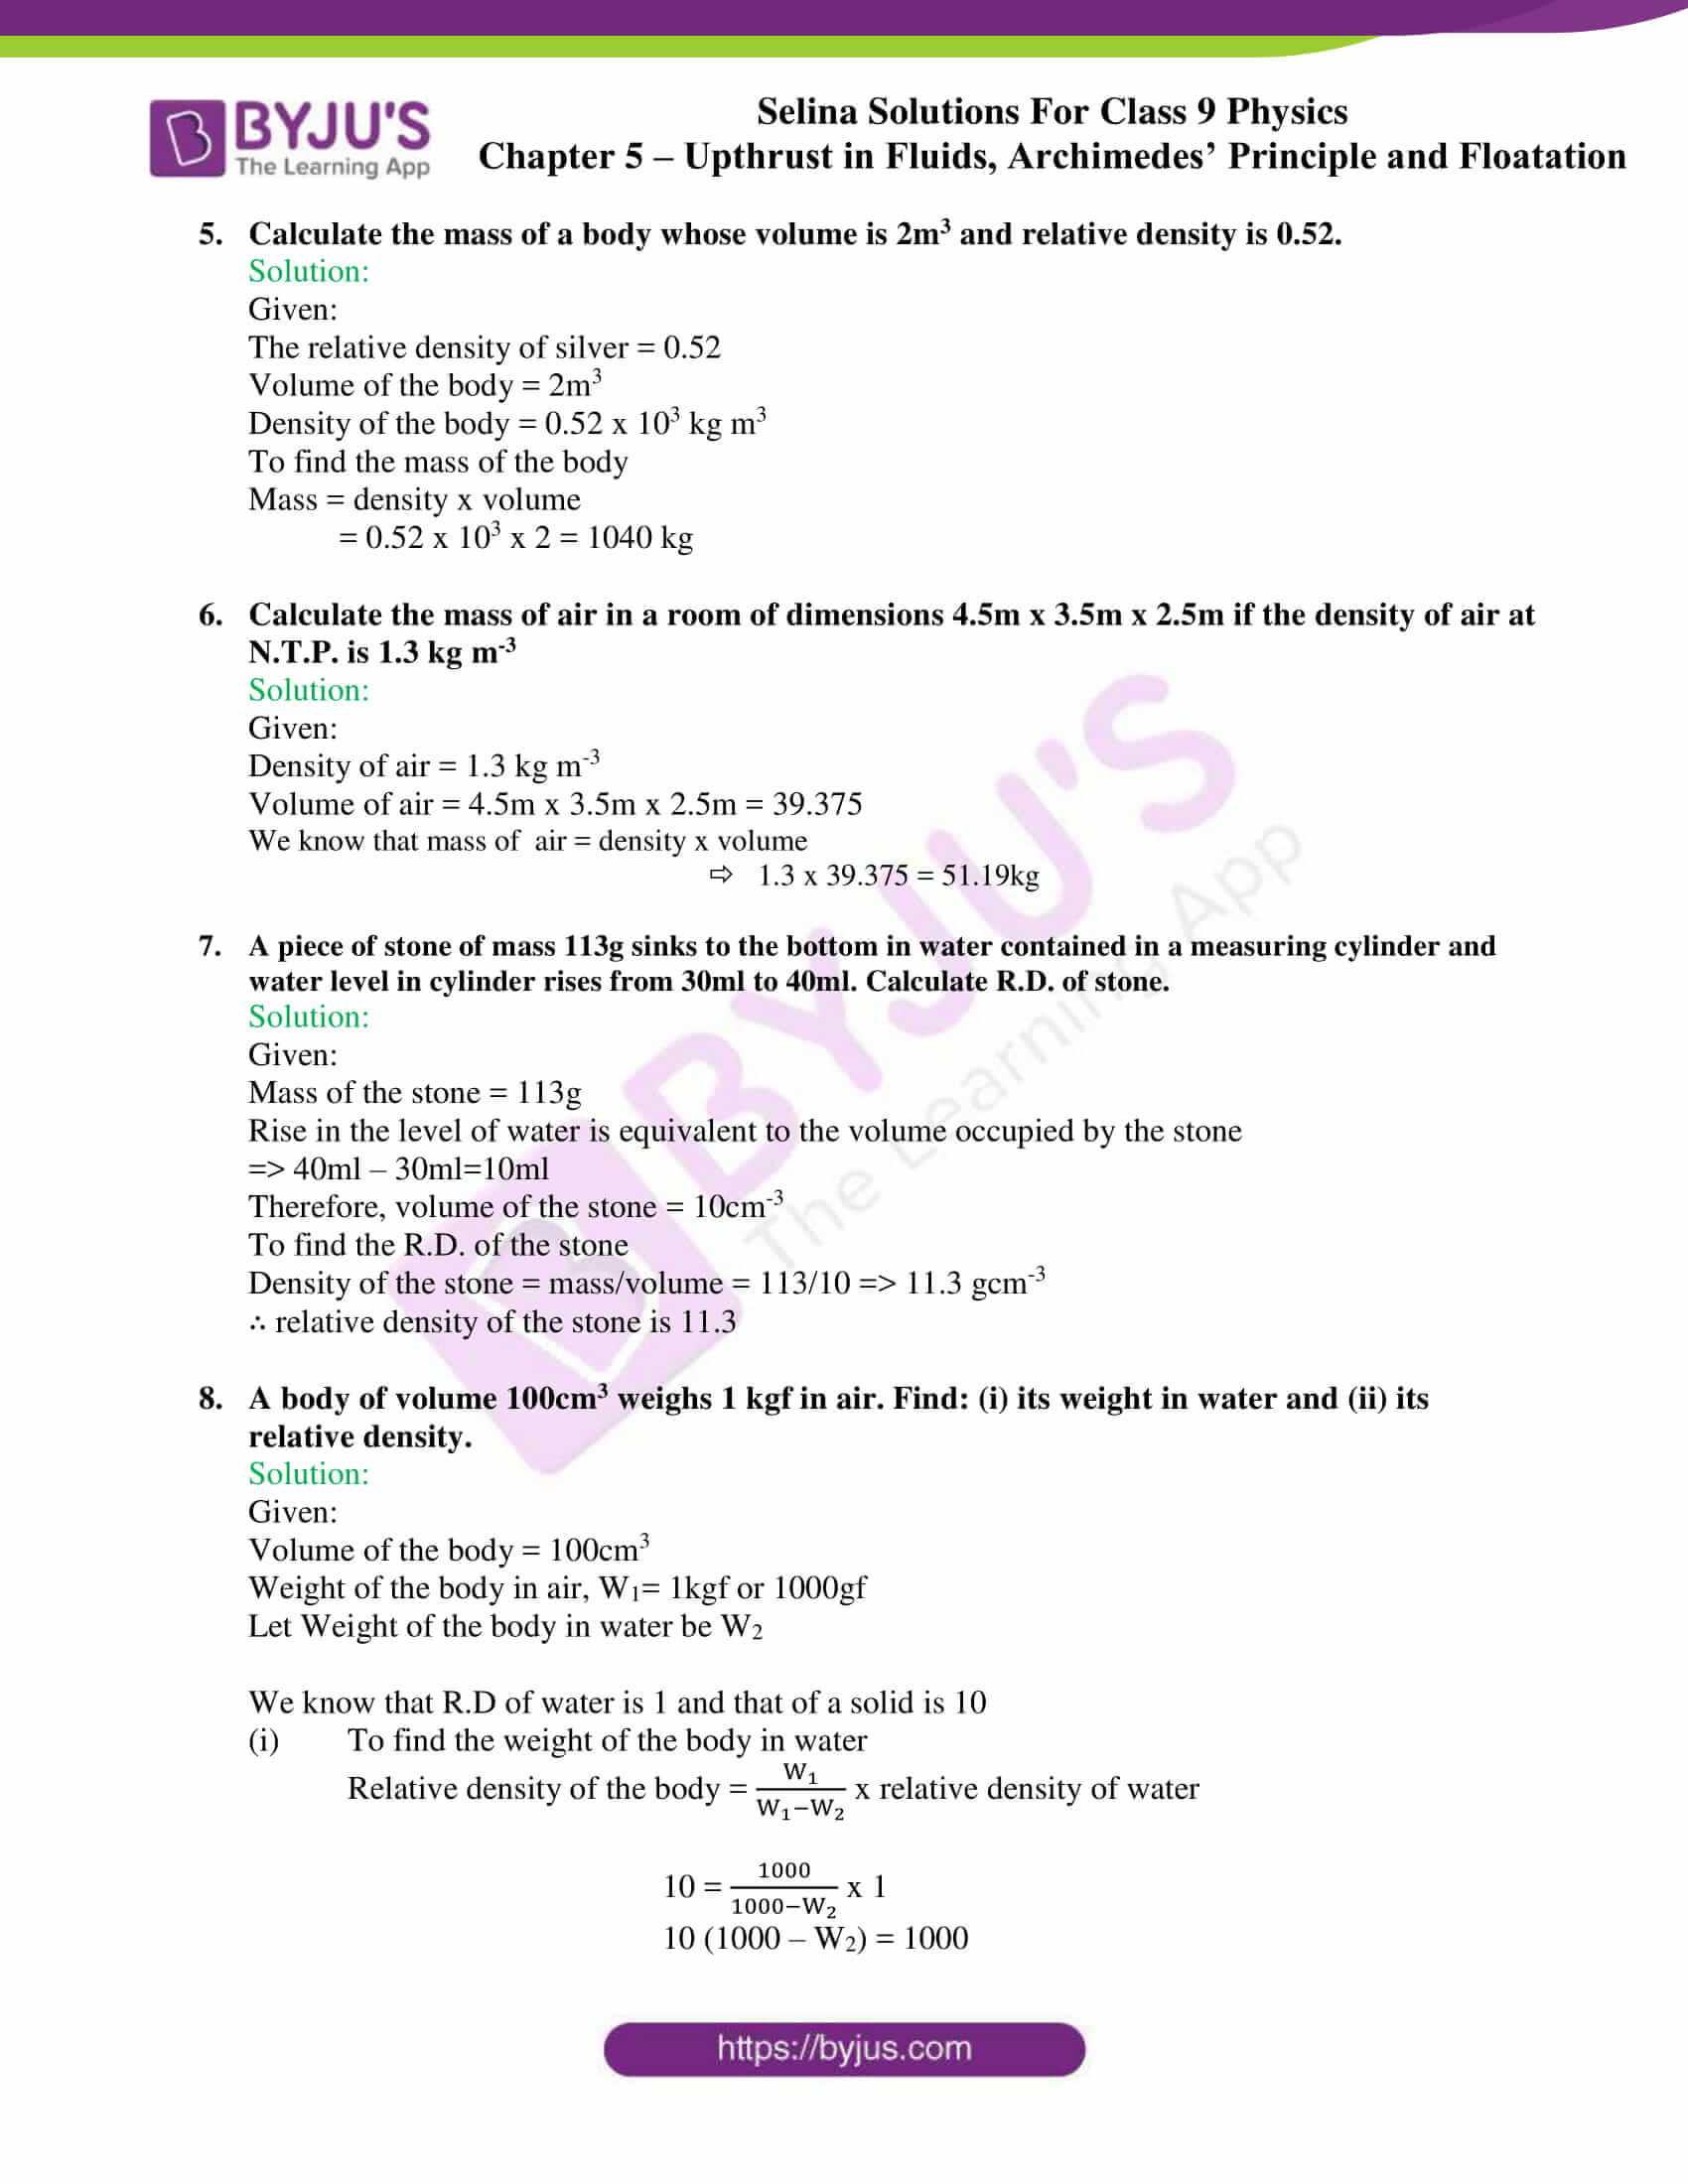 selina solutions class 9 physics chapter 5 part 19